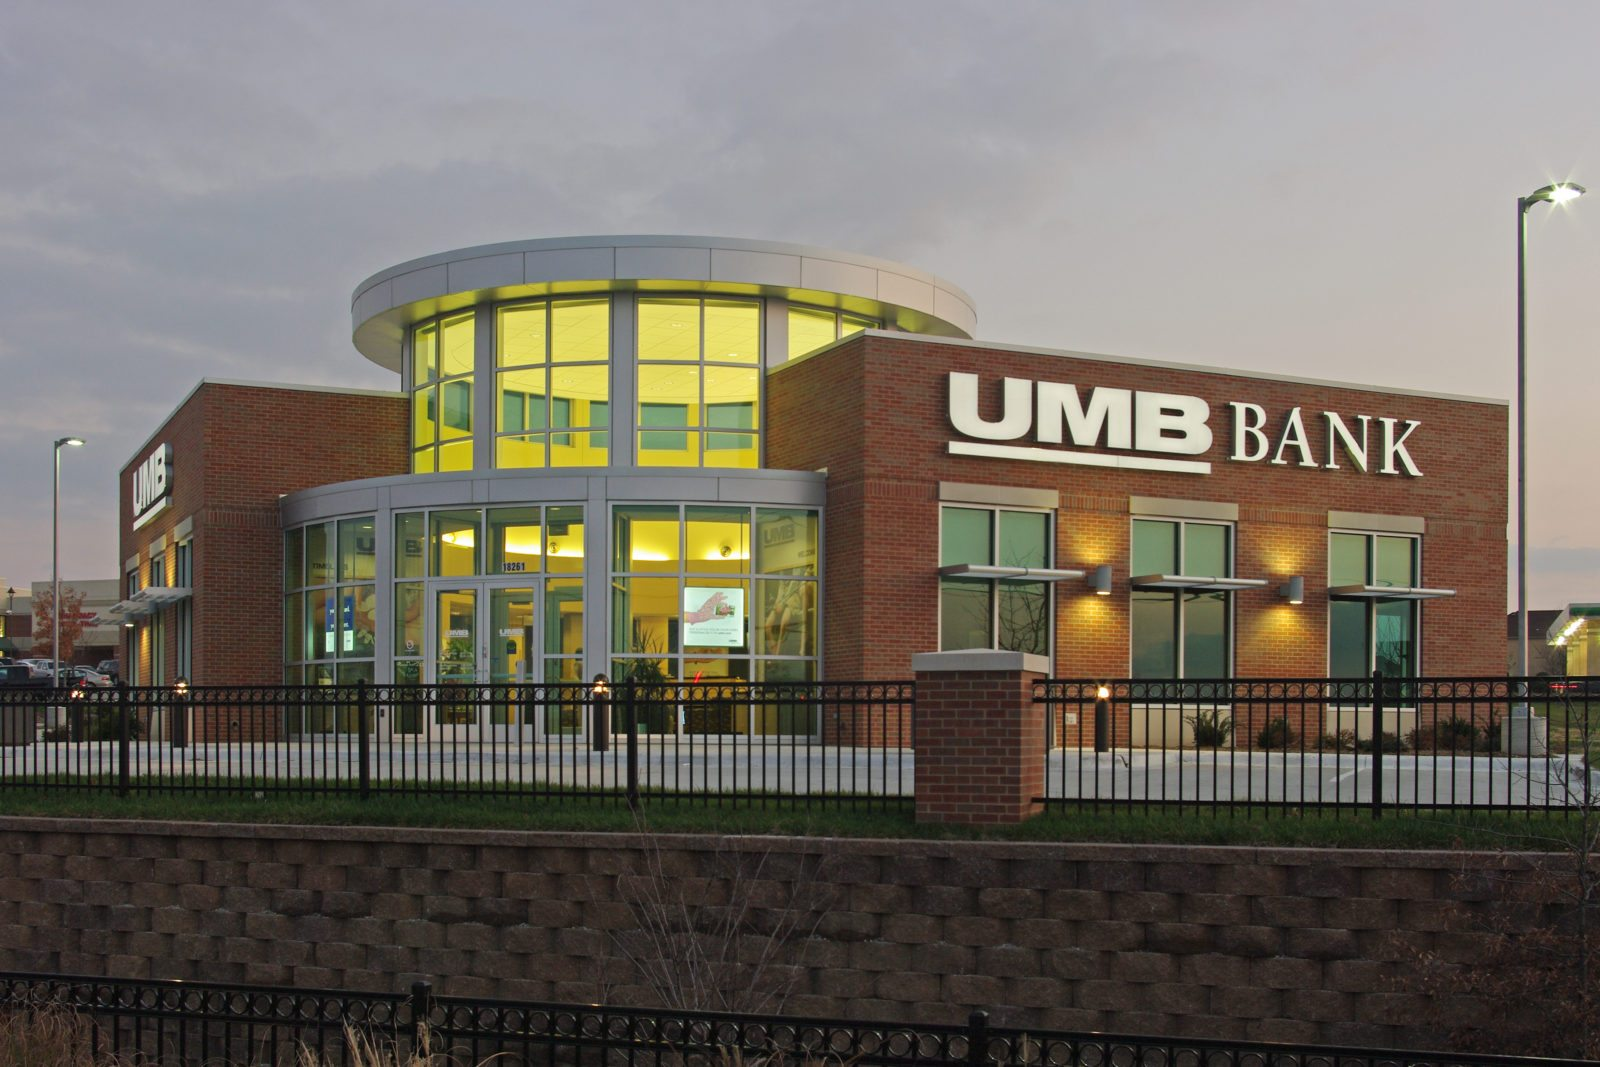 UMB Bank - Olathe, KS